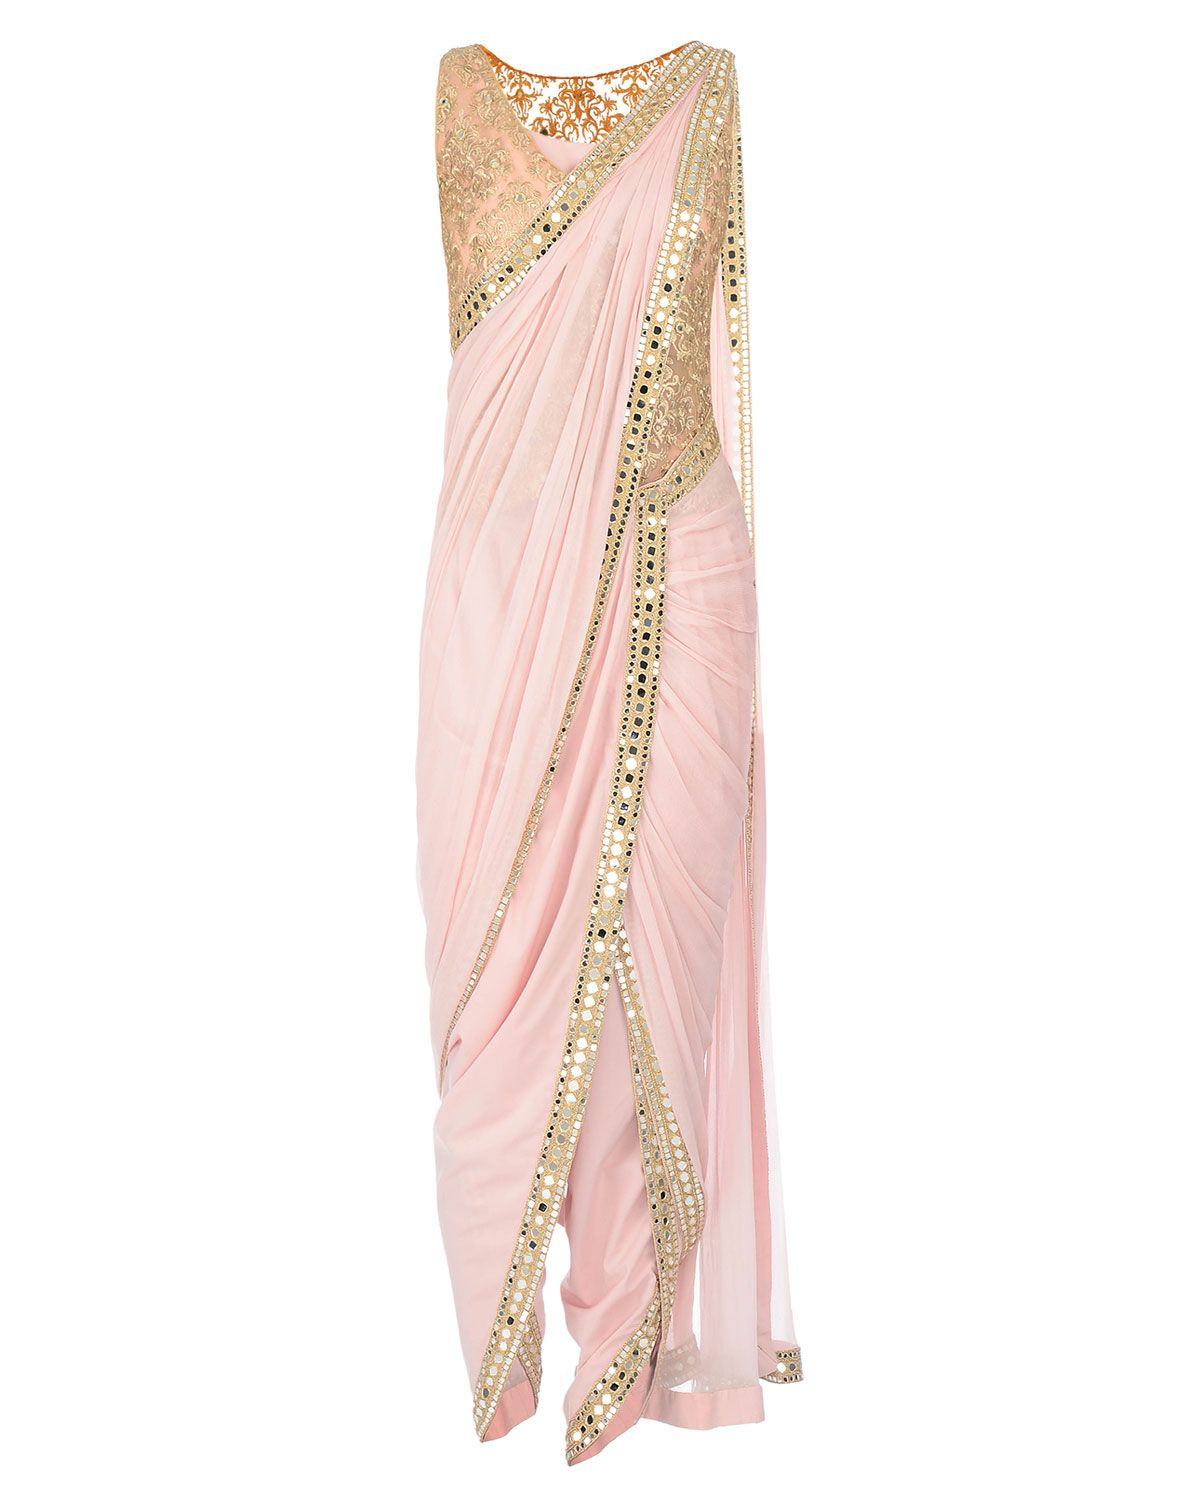 088efcb1e89a7 Mirror Work Embroidered Powder Pink Dhoti Saree More